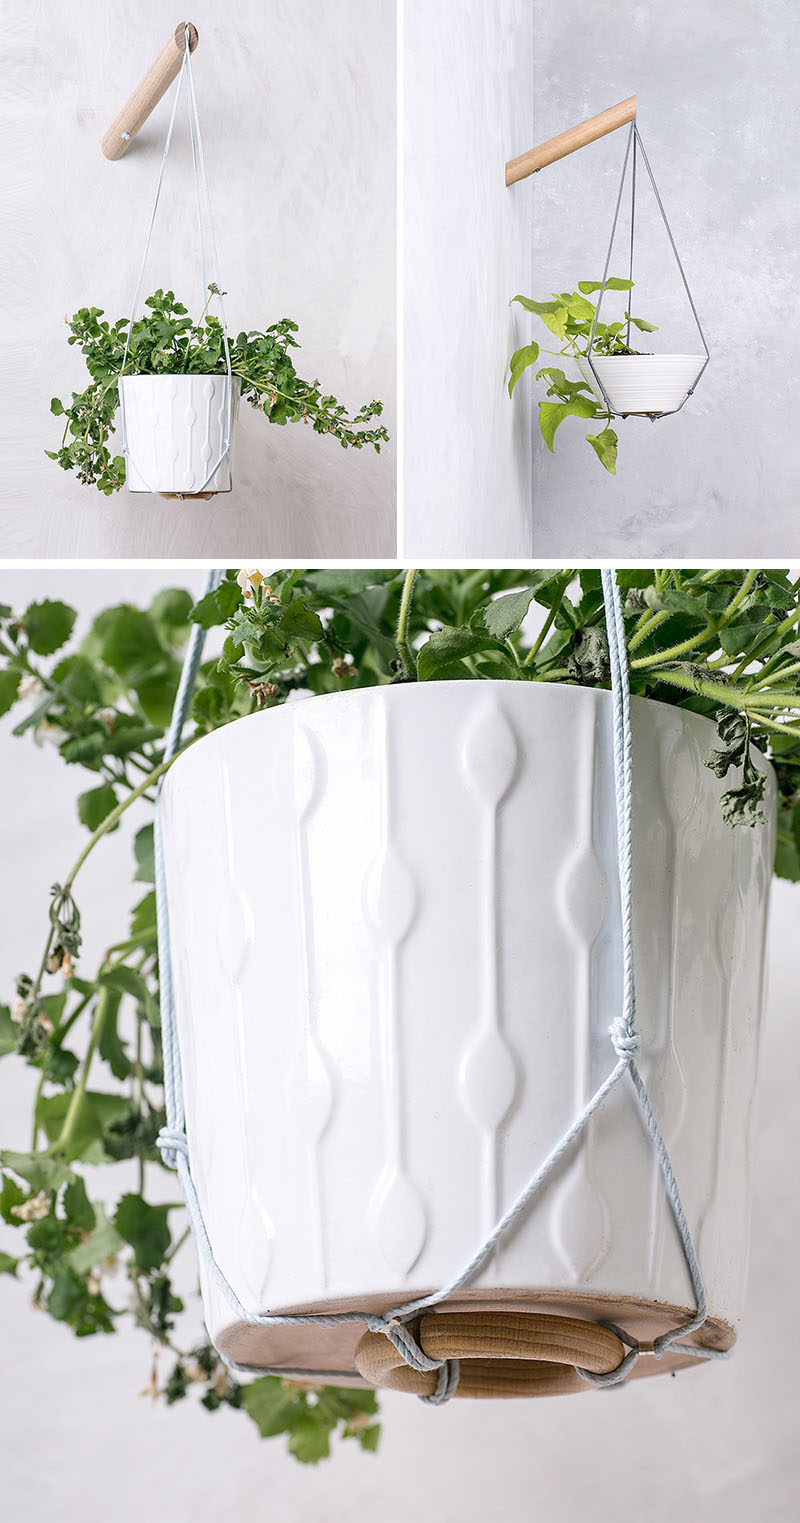 These Wall Planters Allow You Have Hanging Plants Wherever Want Them Simply By Attaching To A Wood Pole Mounted The